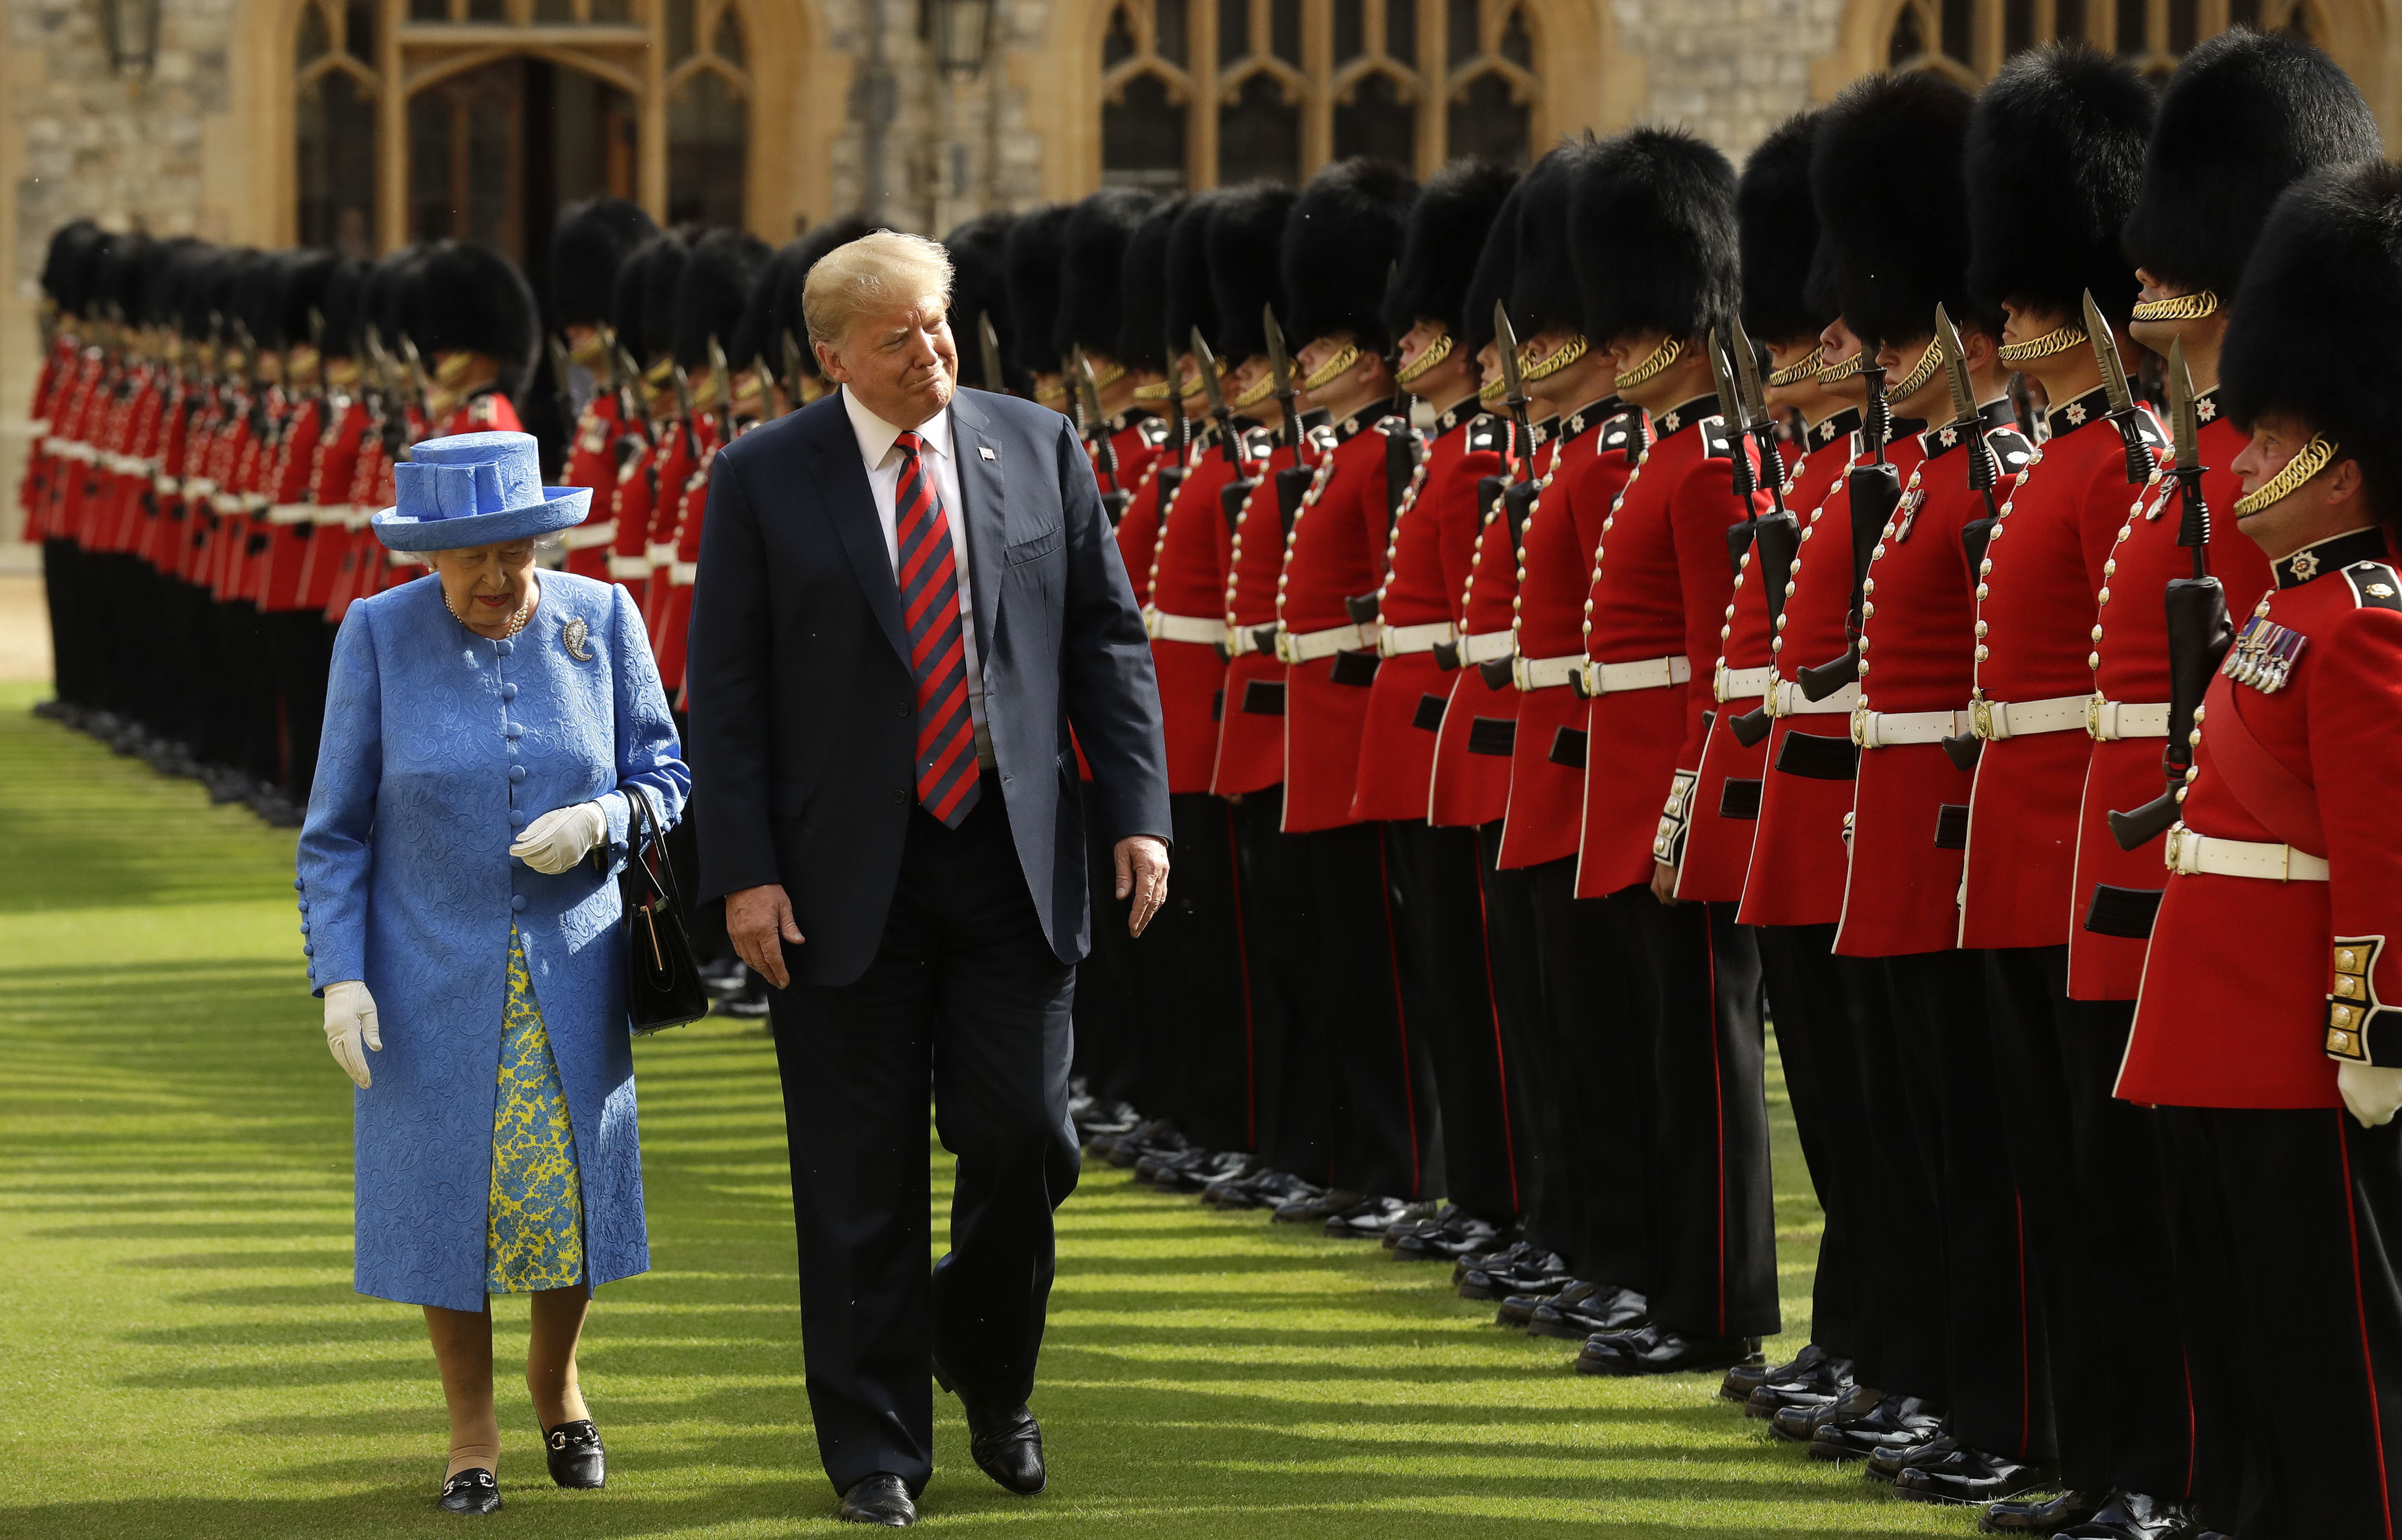 Donald Trump and the Queen inspect a guard of honour at Windsor Castle